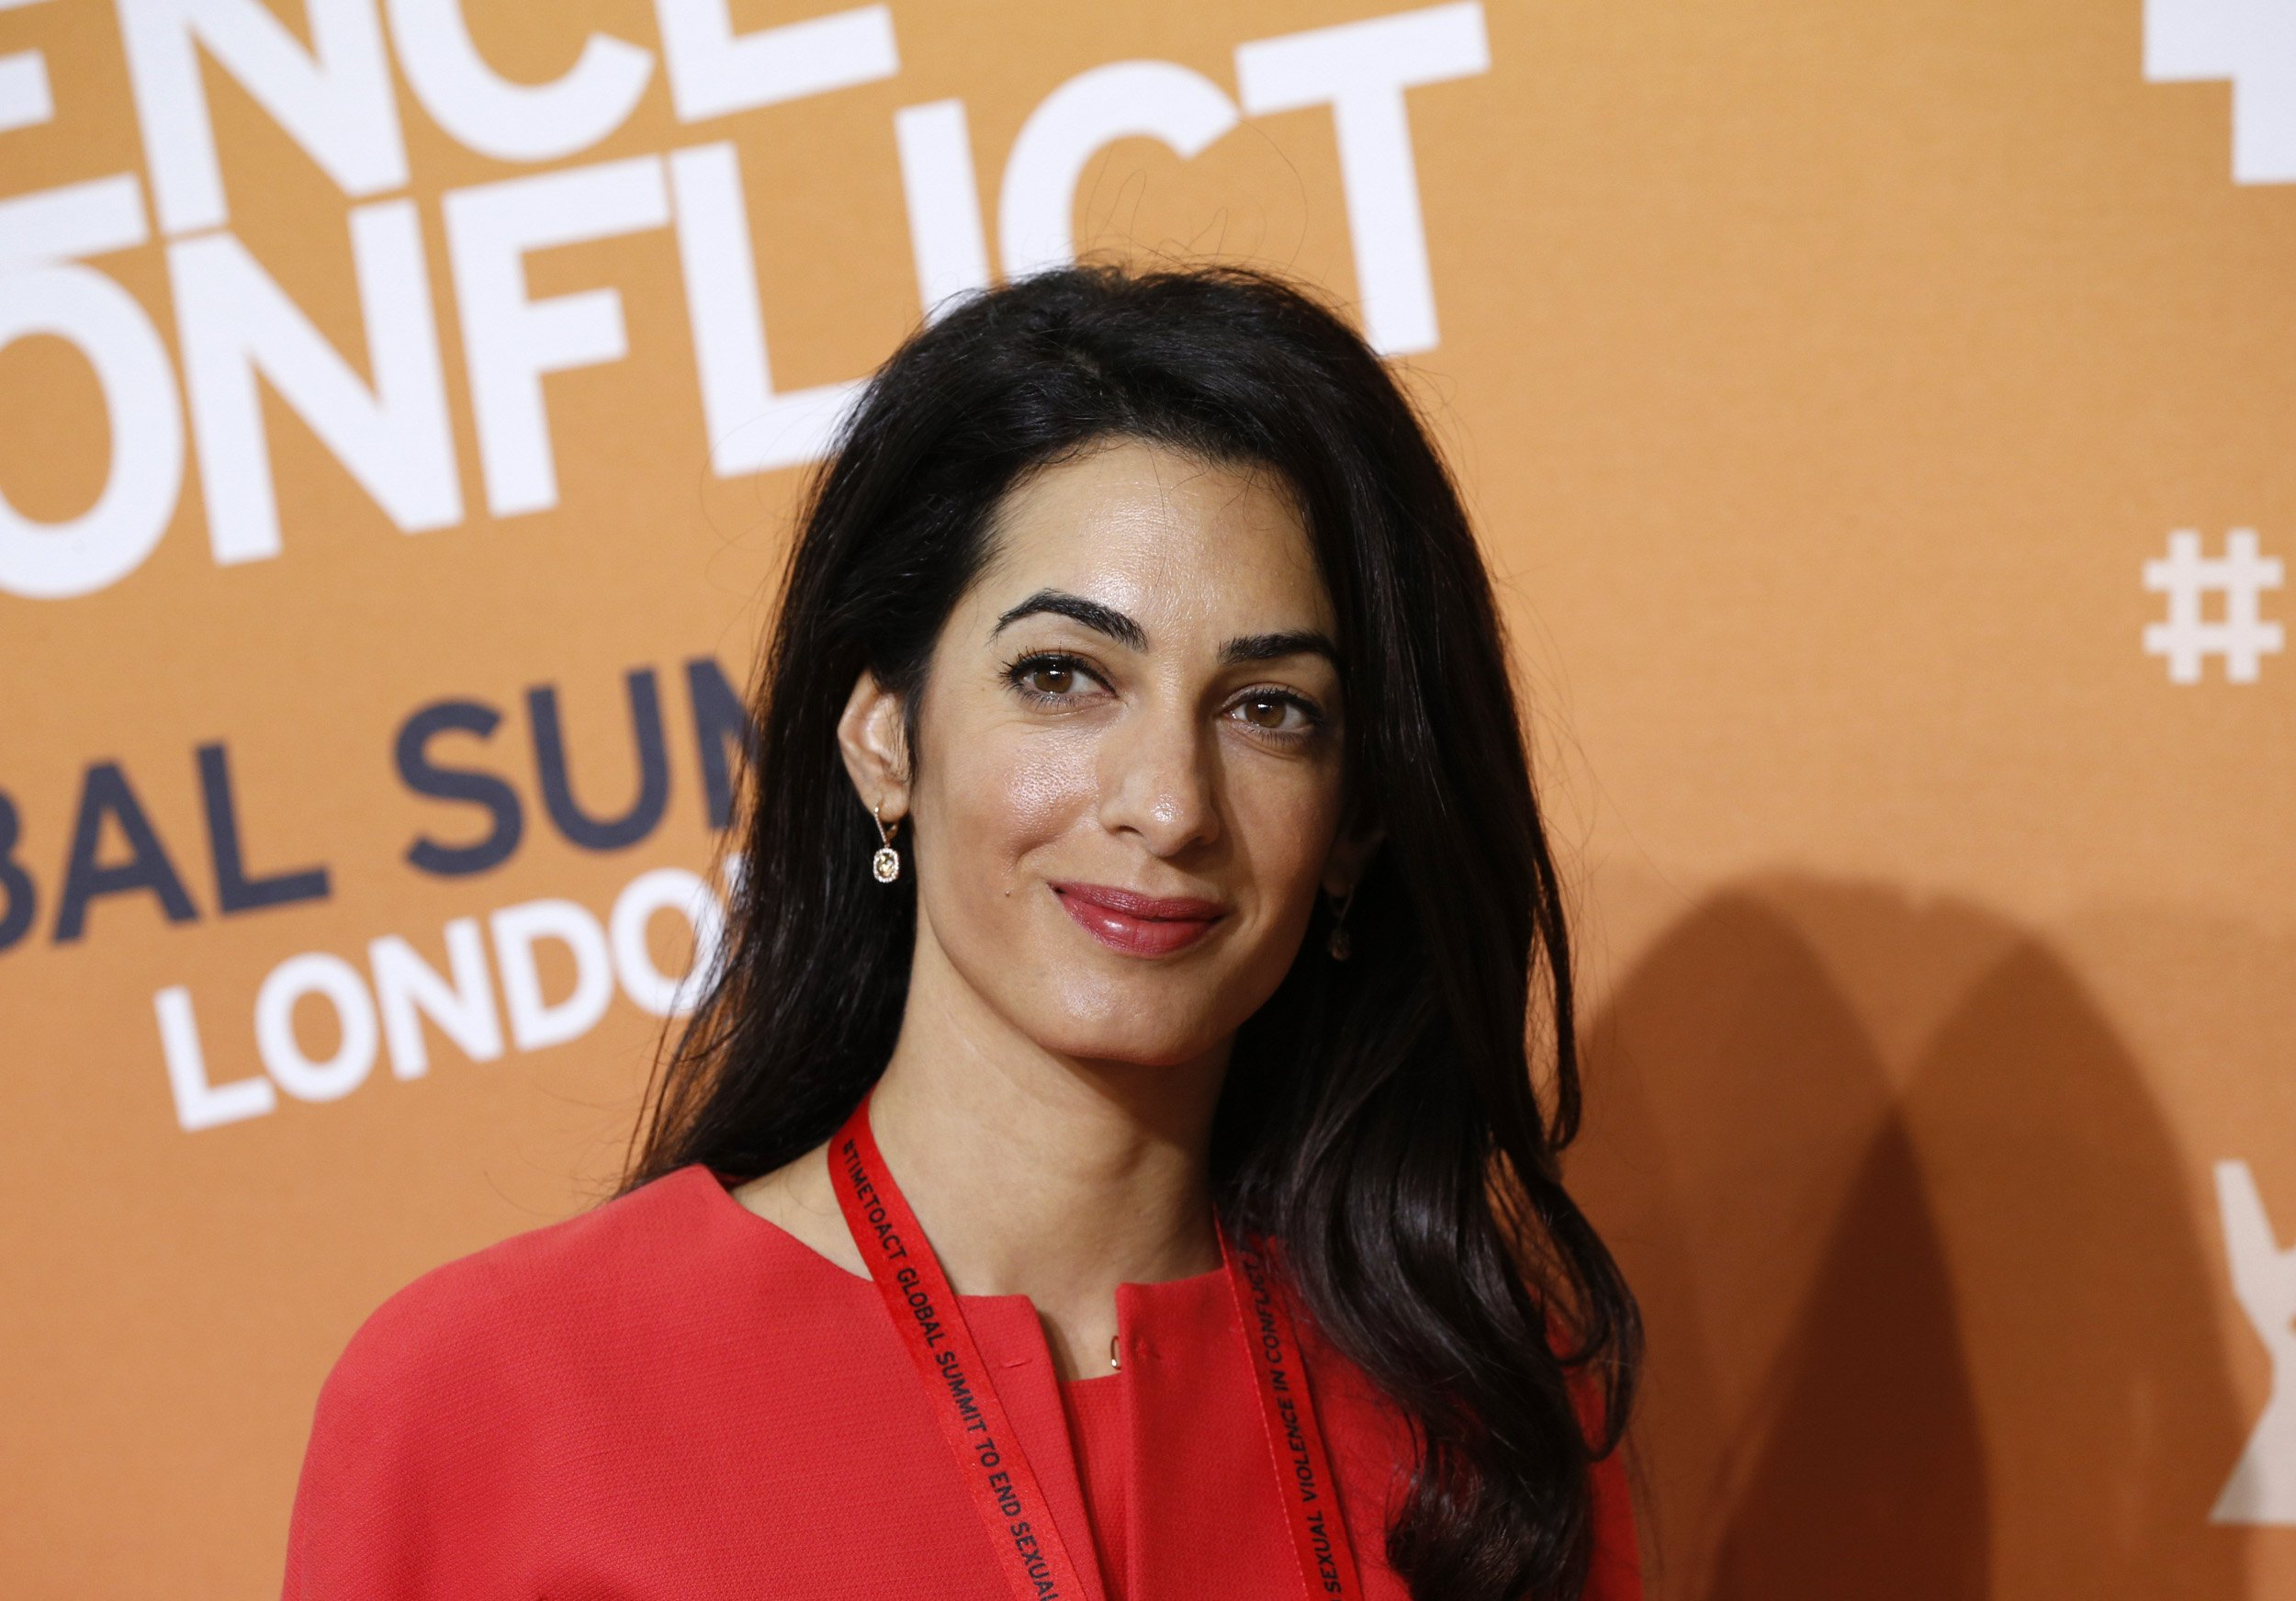 Human-rights lawyer Amal Alamuddin attends the End Sexual Violence in Conflict summit in London on June 12, 2014